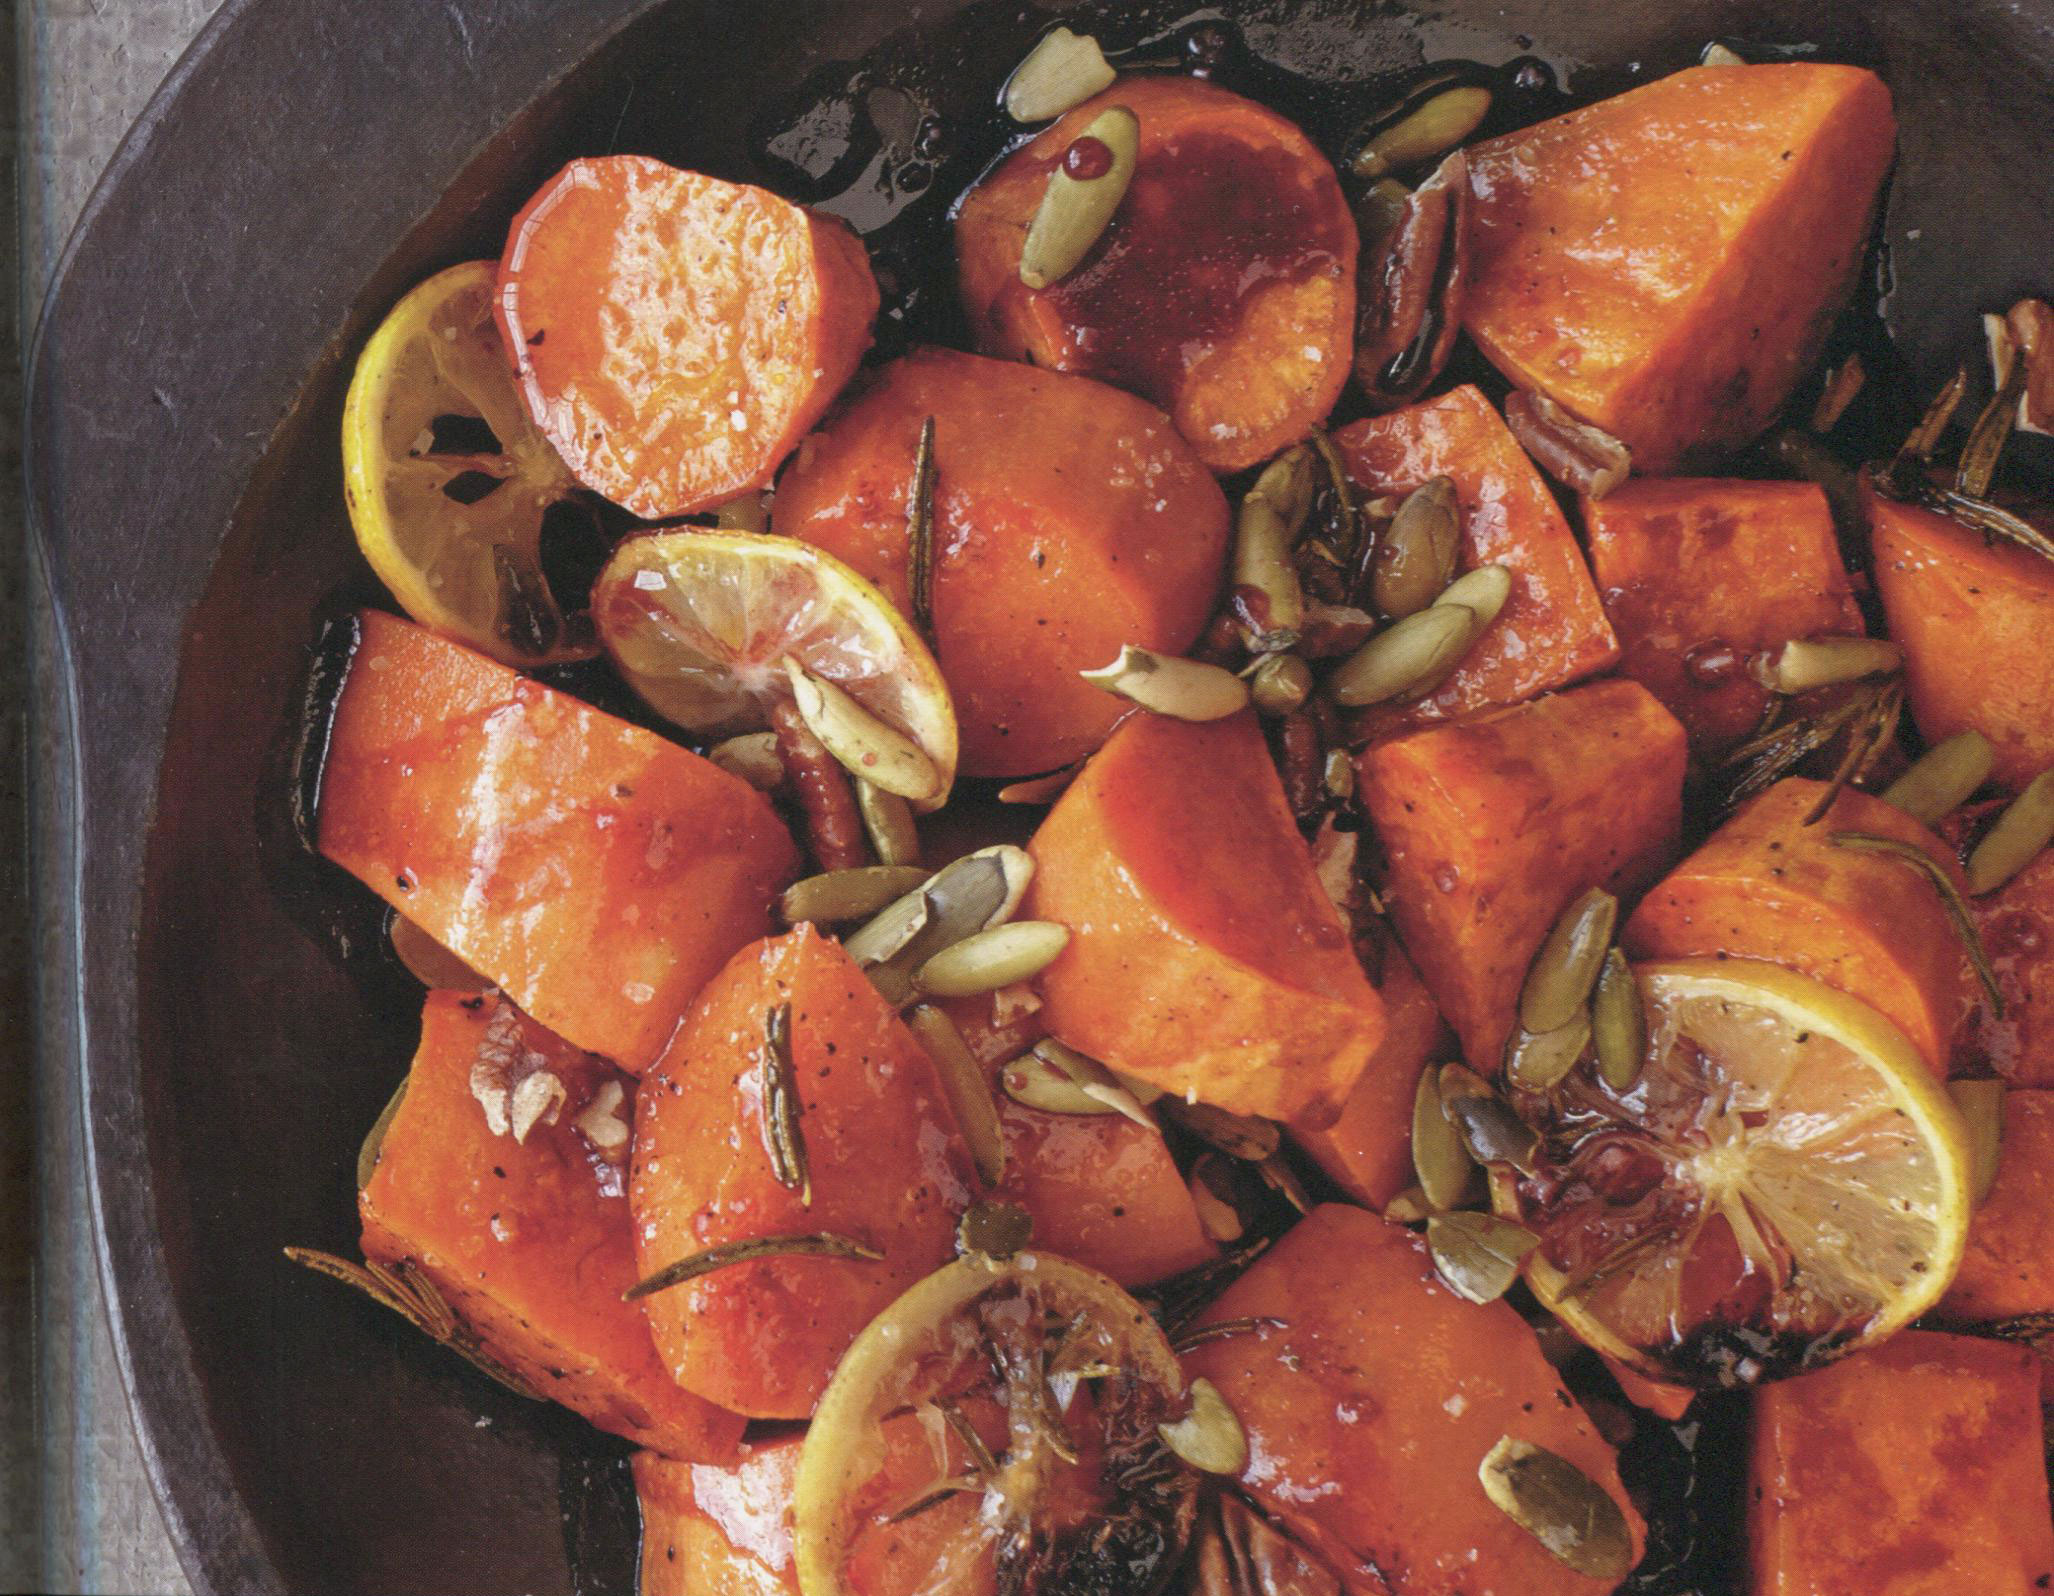 Pomegranate-Ginger Sweet Potatoes with Pecans and Pumpkin Seeds